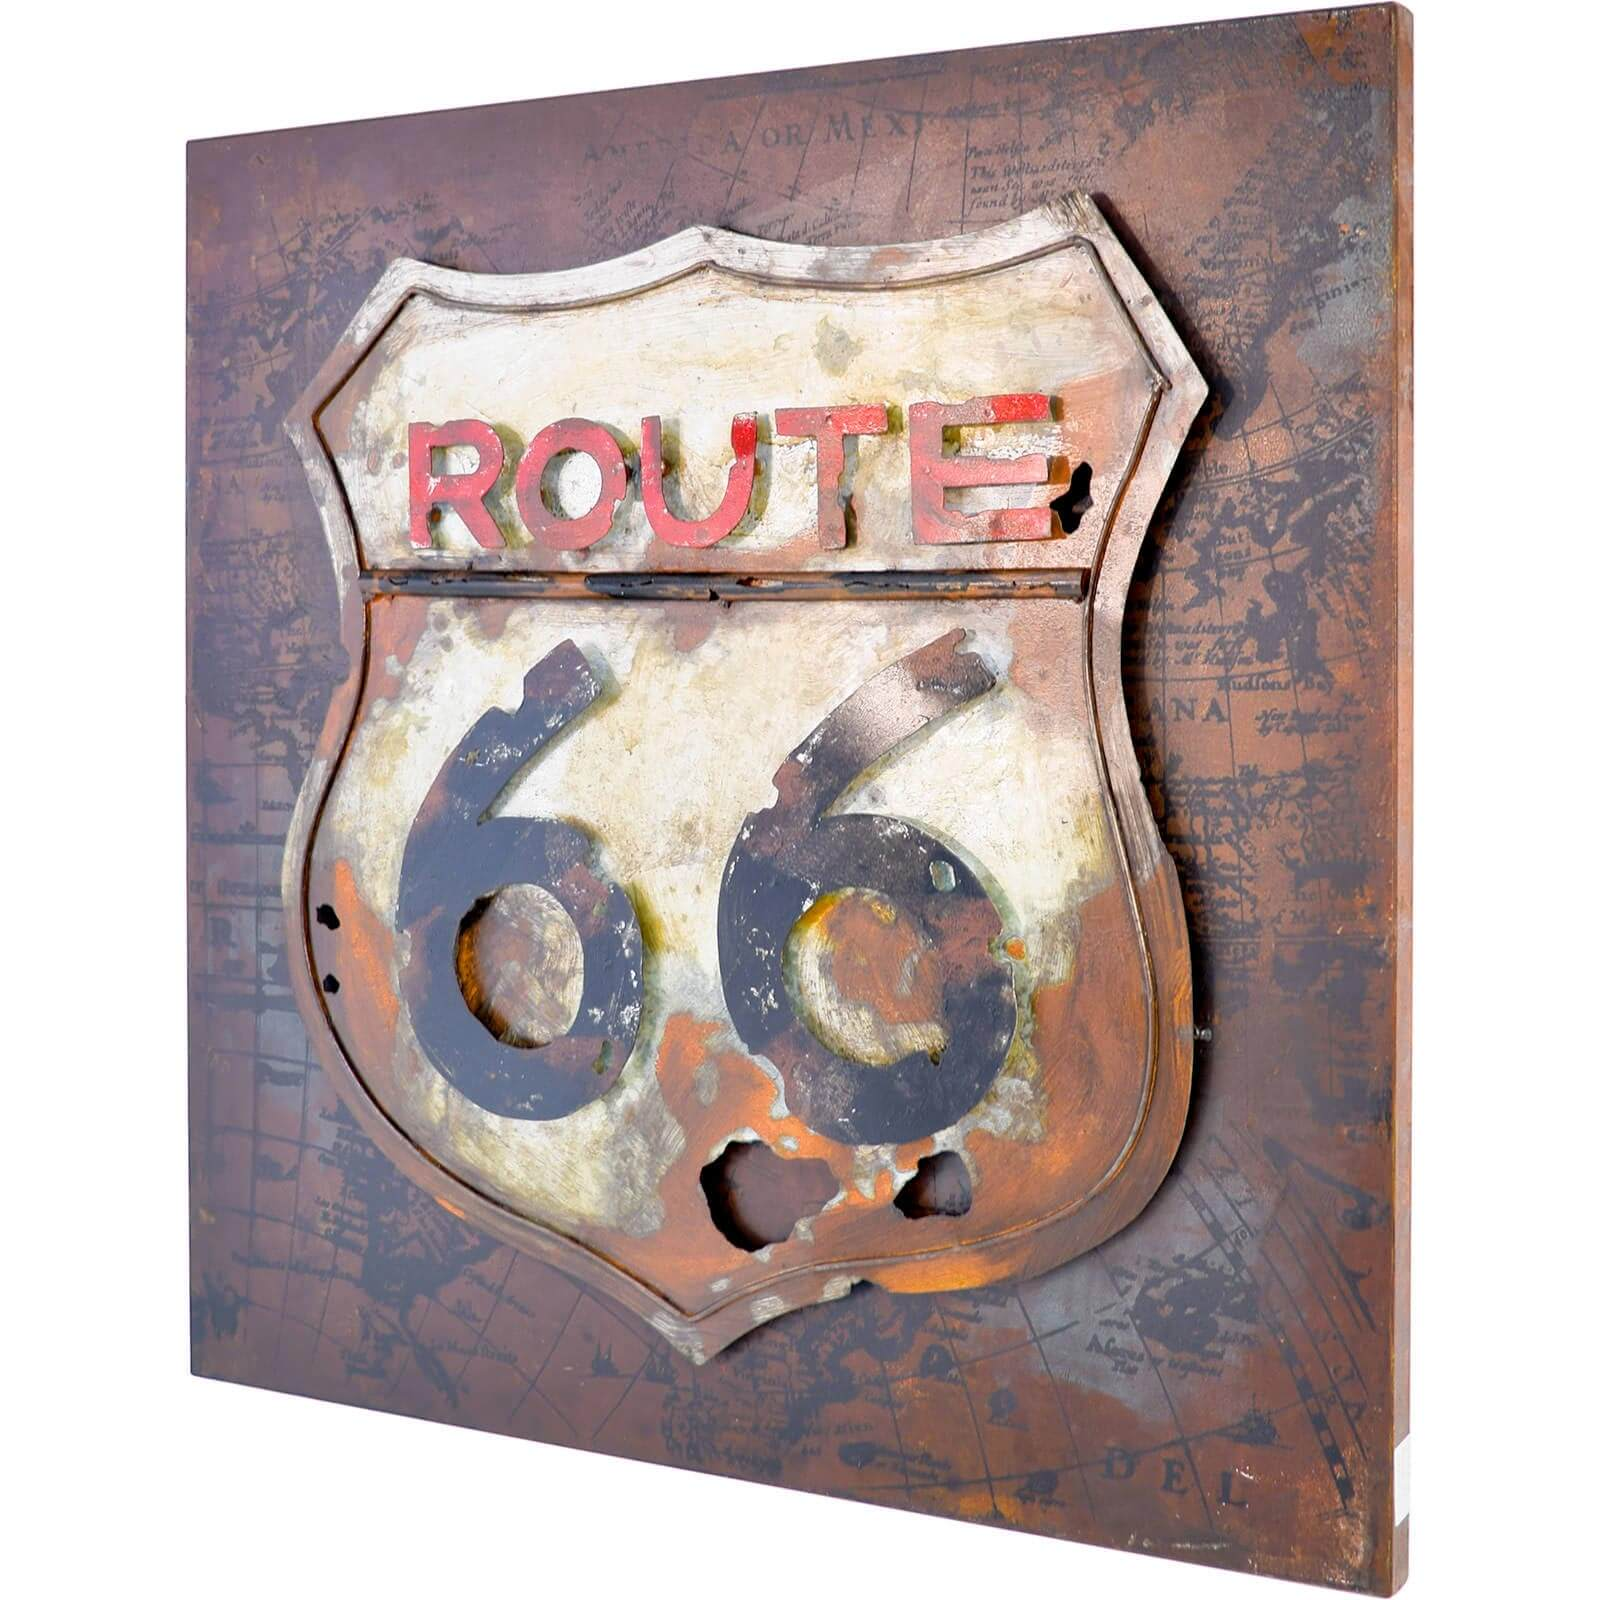 3d-metallbild-route-66